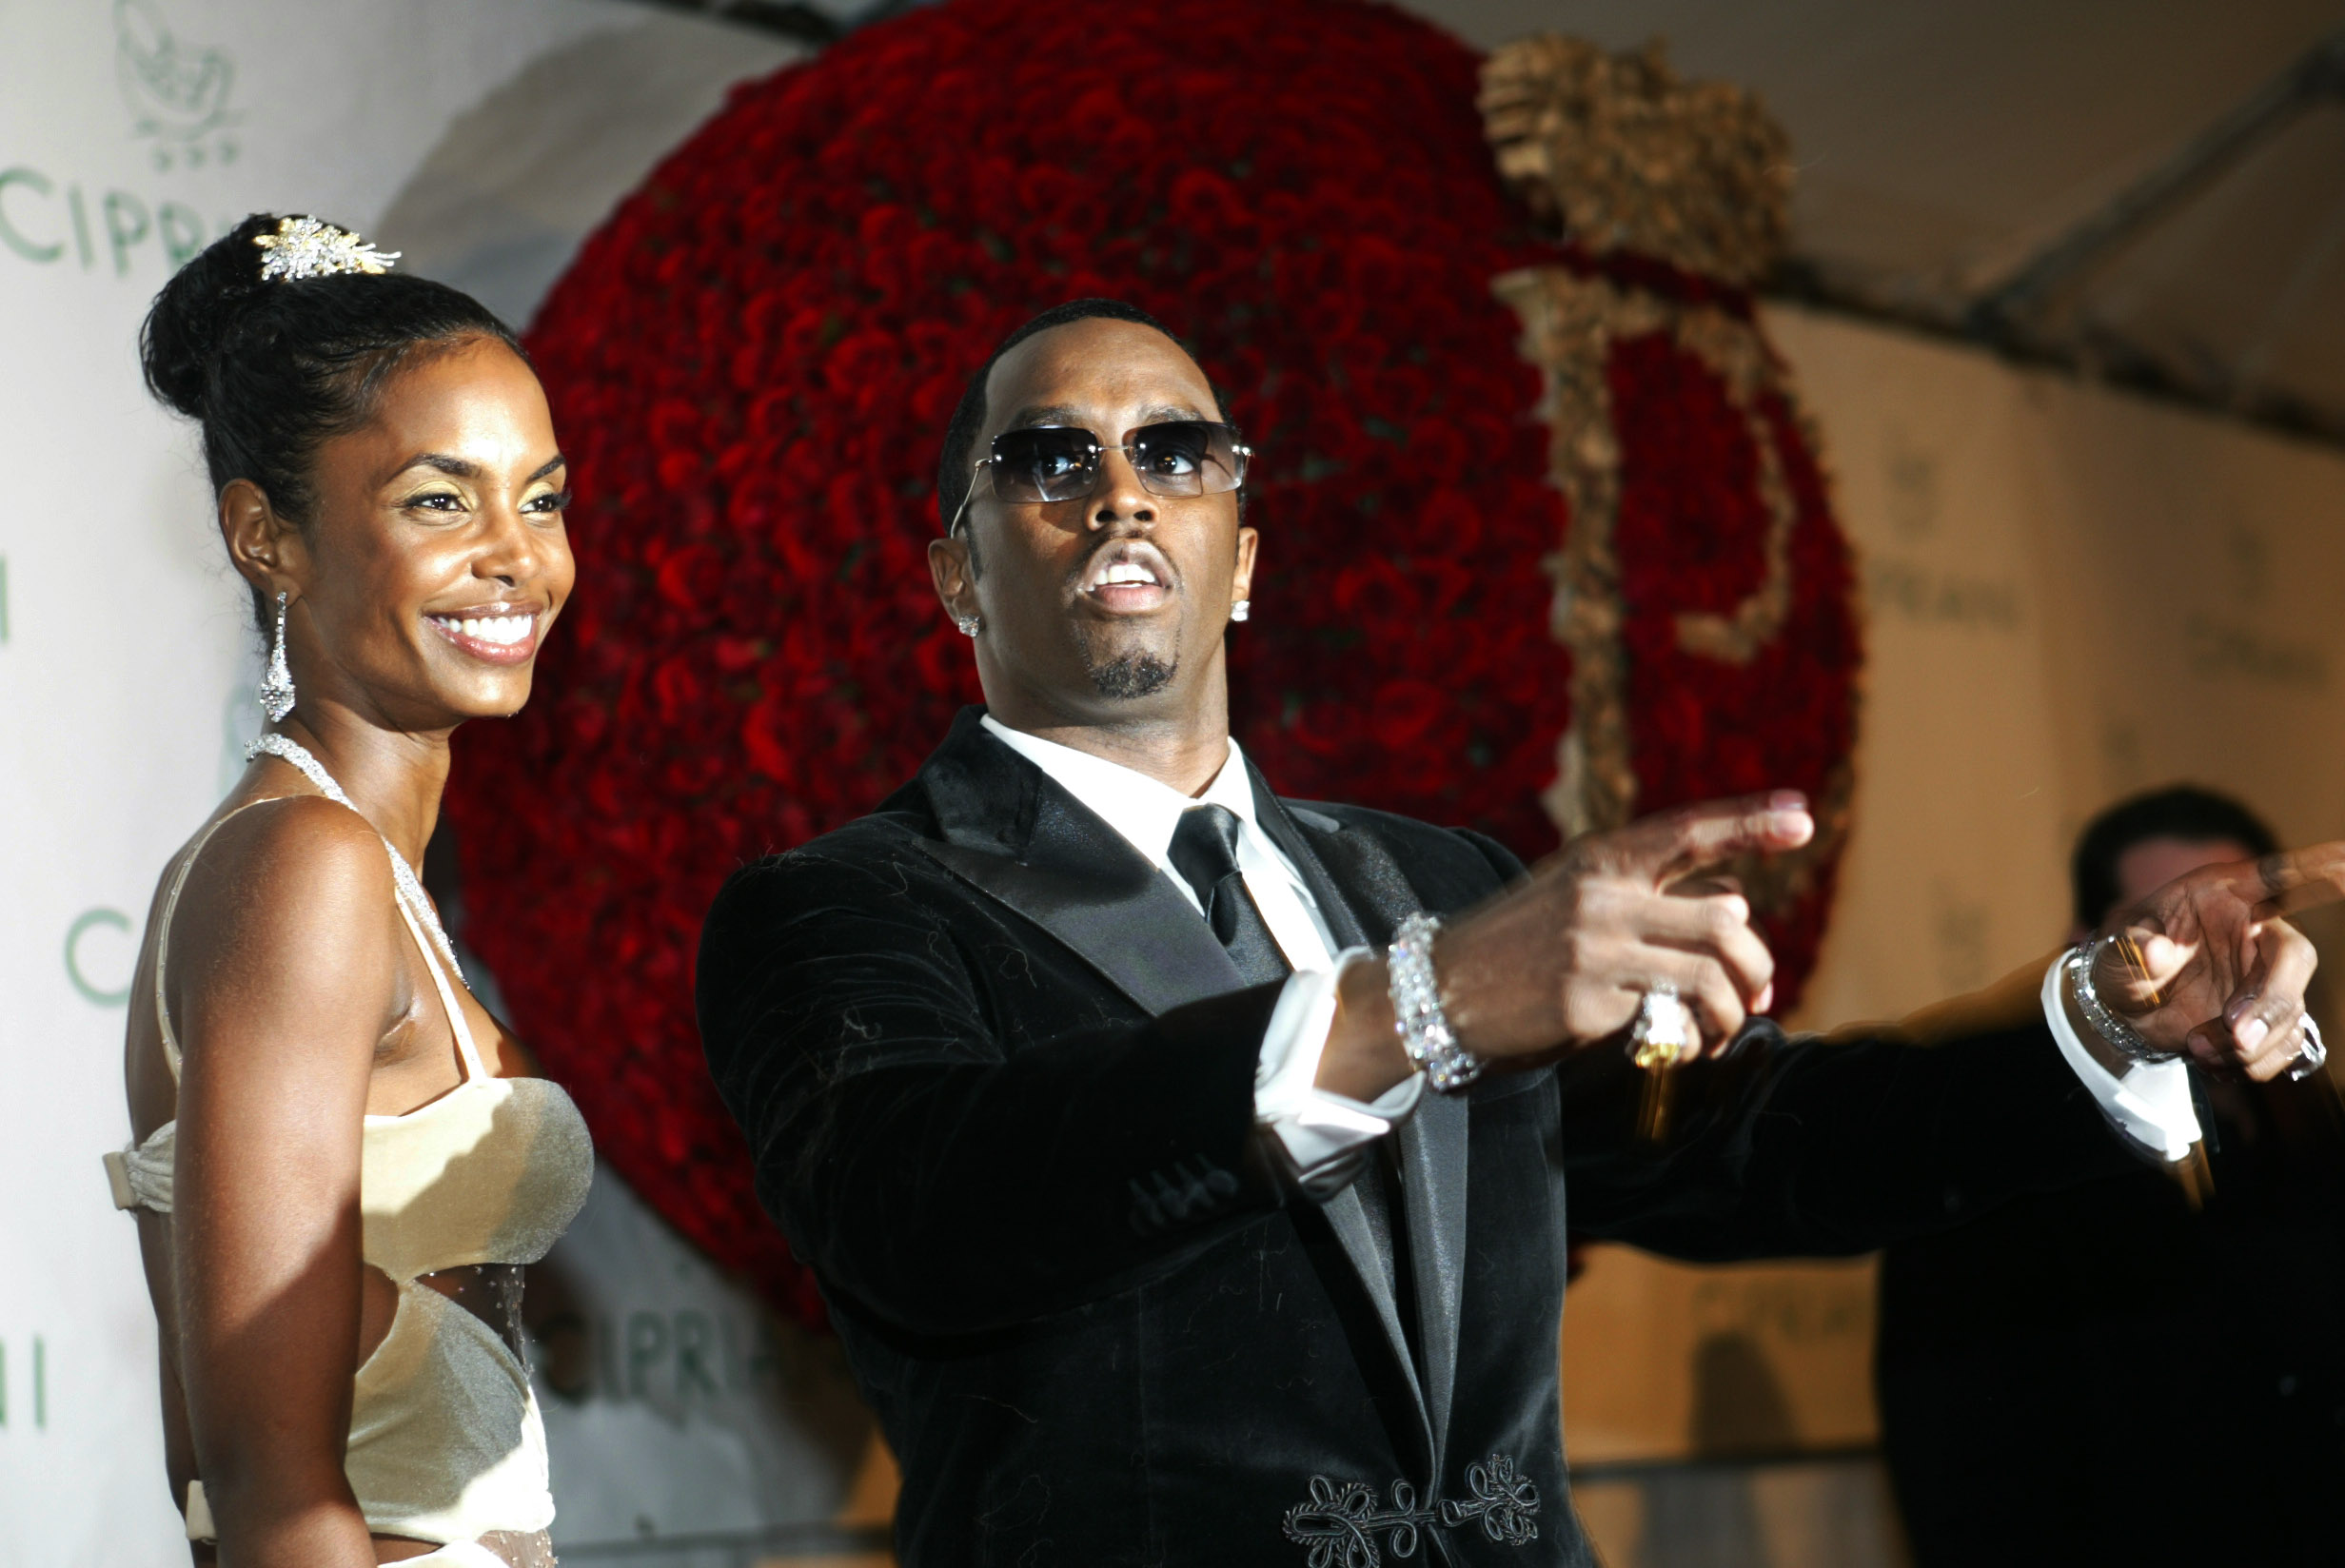 Sean P. Diddy Combs directs photographers as they sing Happy Birthday, to him as his date Kim Porter, left, listens, Thursday, Nov. 4, 2004.